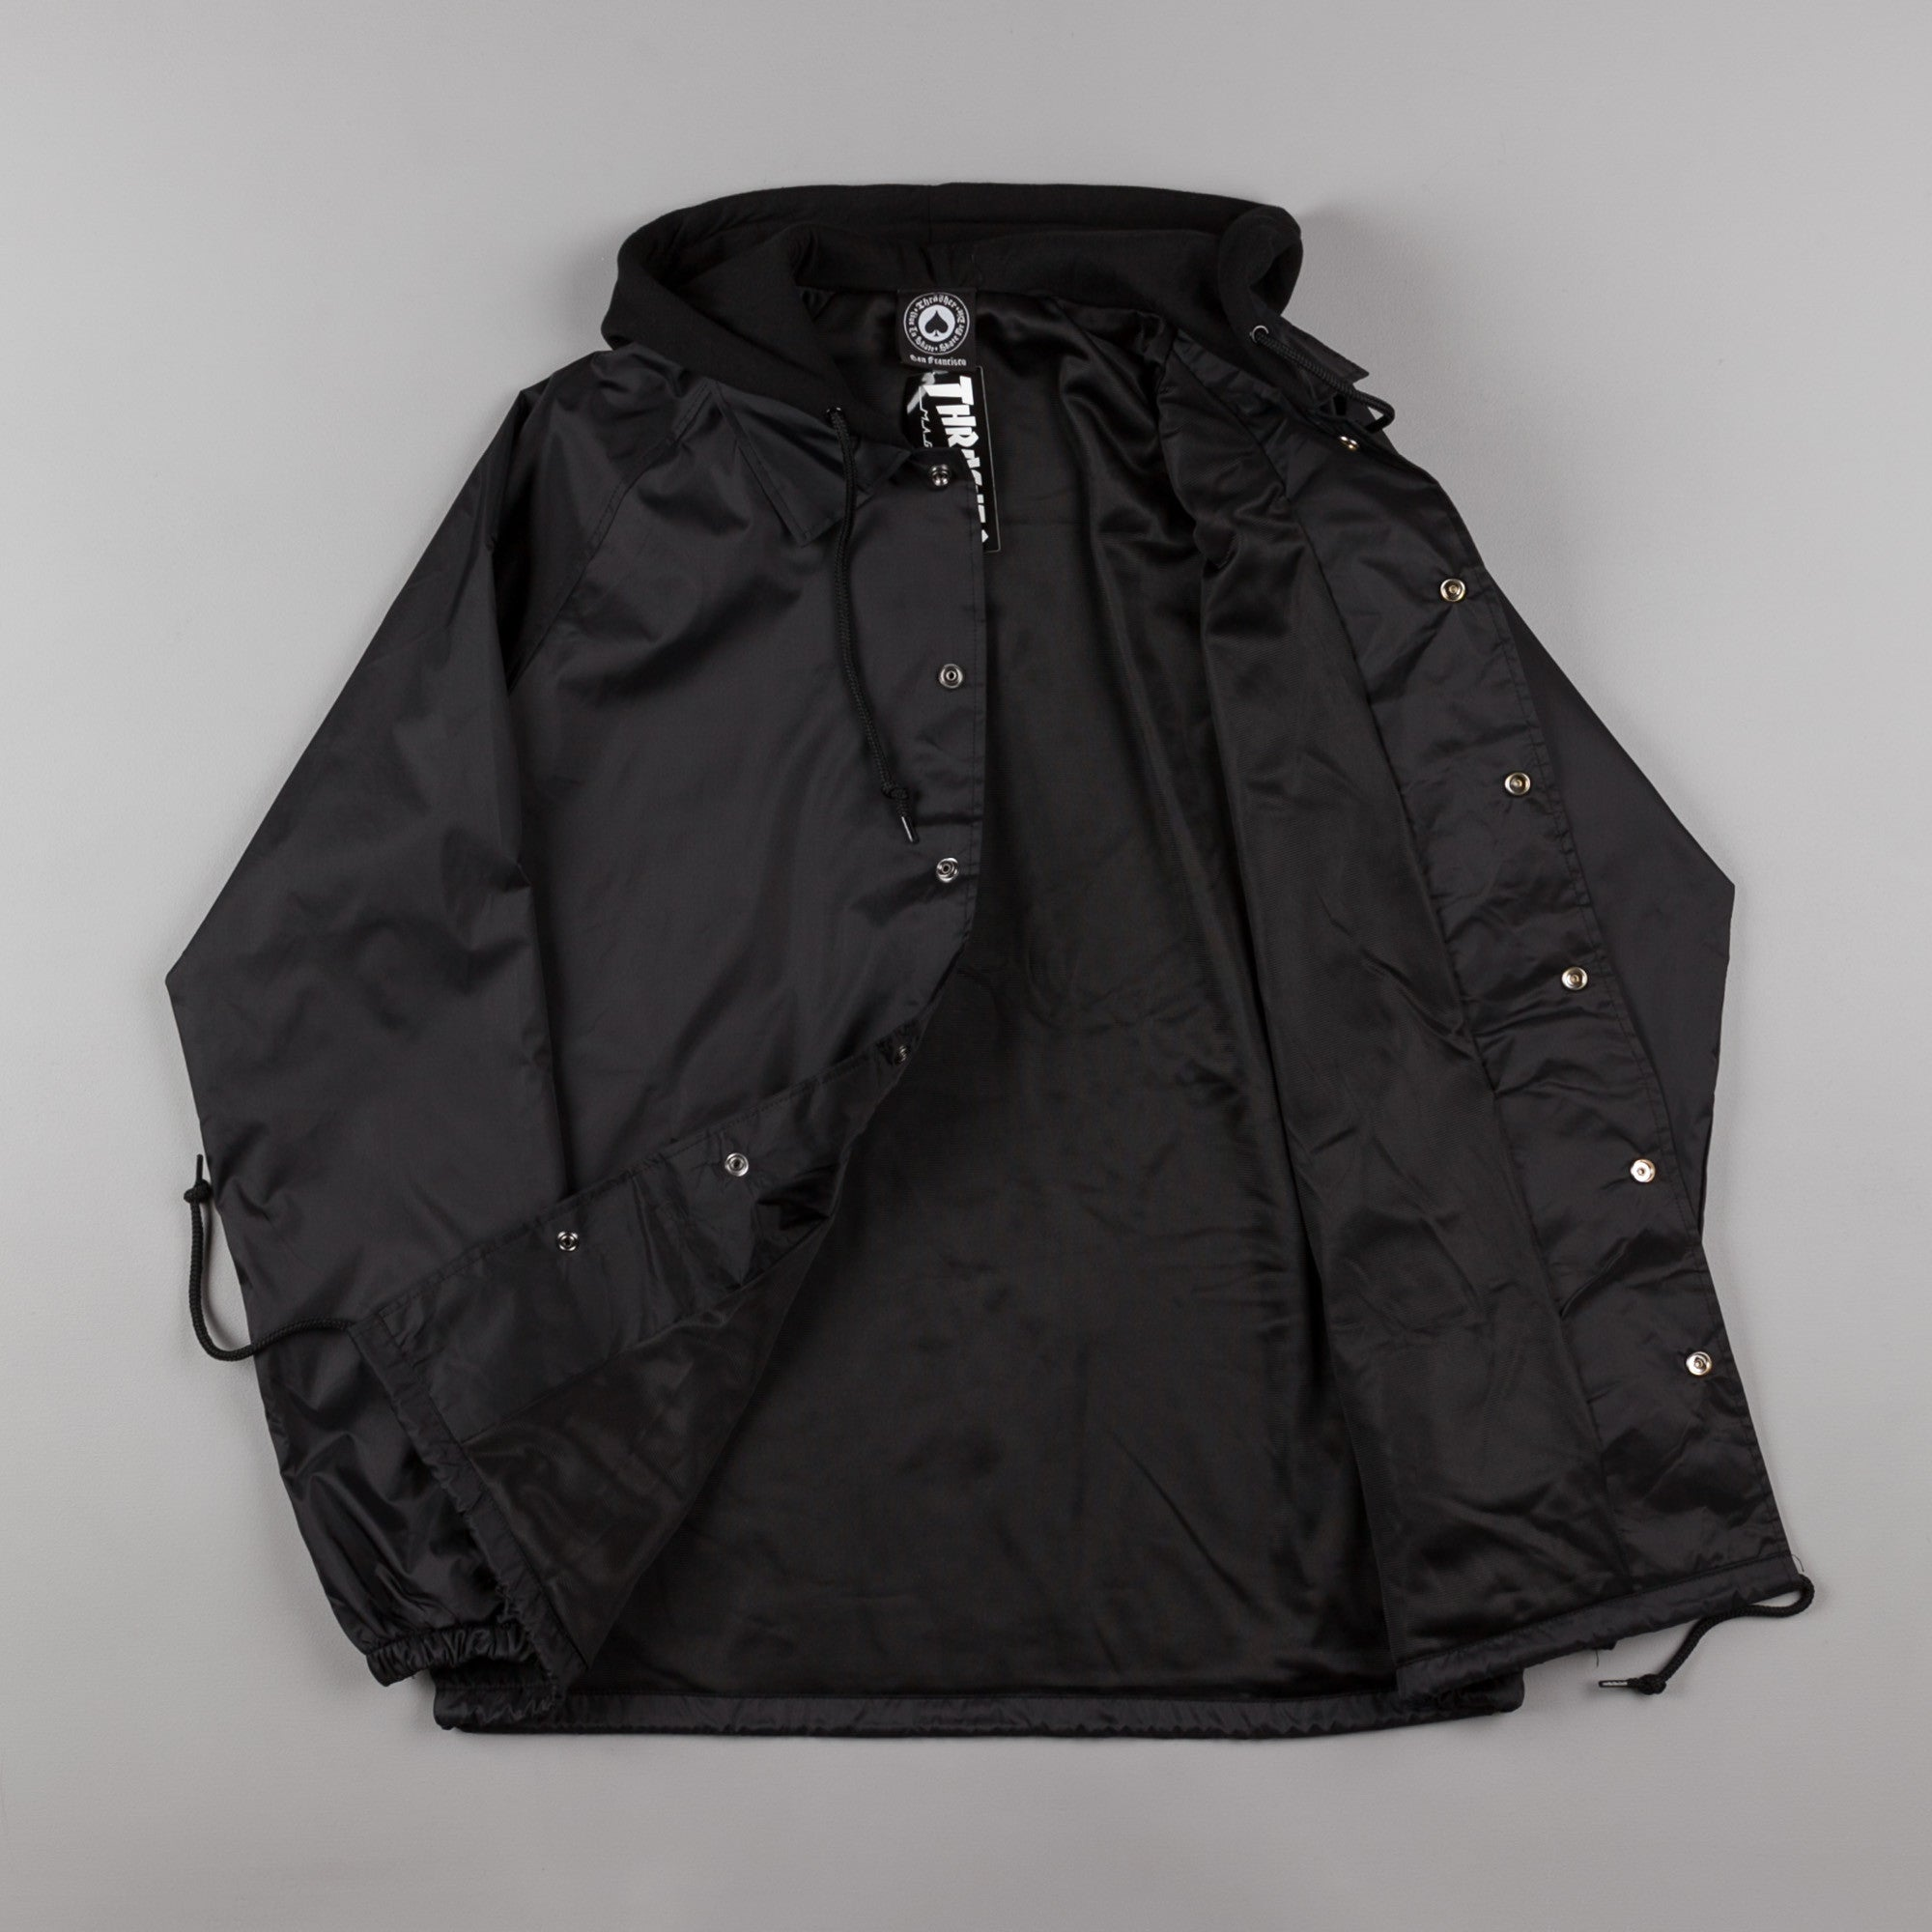 Thrasher Flame Logo Coach Jacket - Black